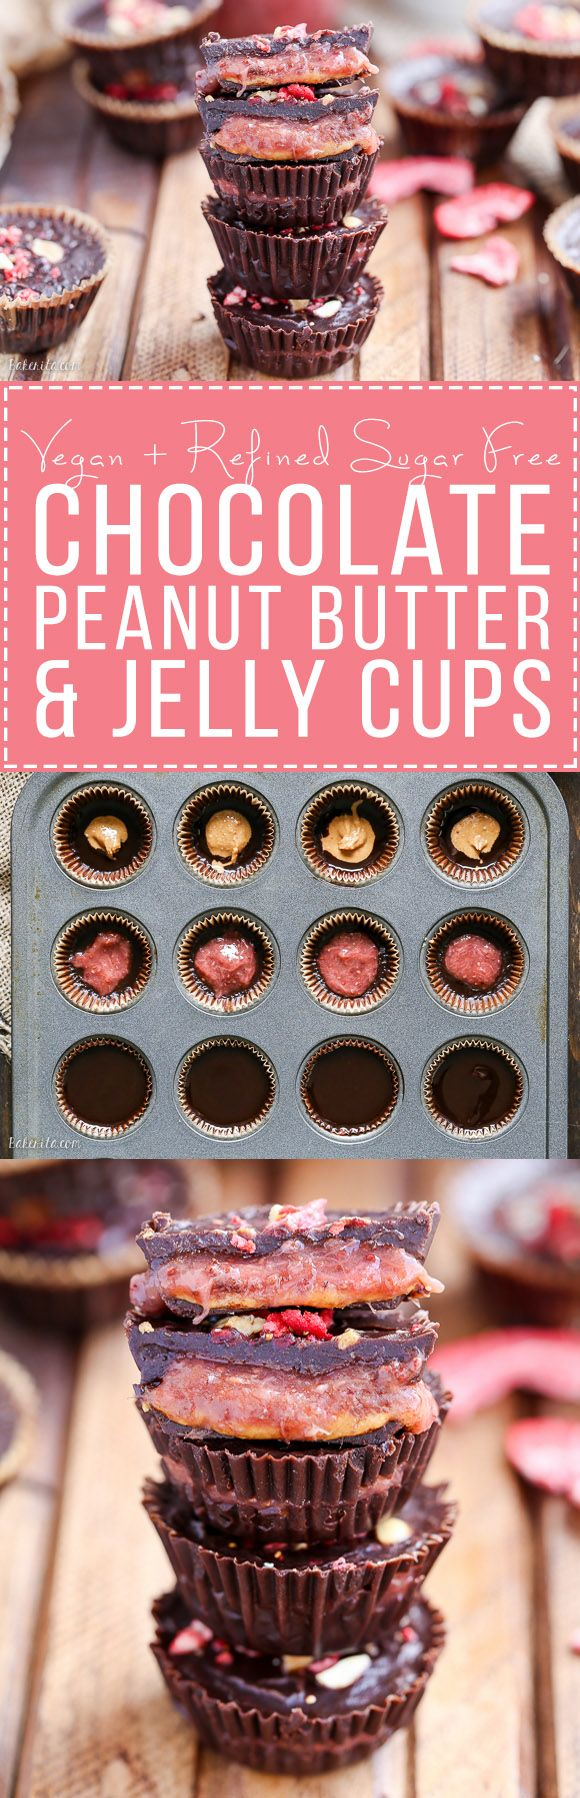 These Chocolate Peanut Butter & Jelly Cups are homemade peanut butter cups with an added layer of jam or jelly! This healthier candy recipe is only 5 ingredients, and uses an easy refined sugar free chocolate recipe.